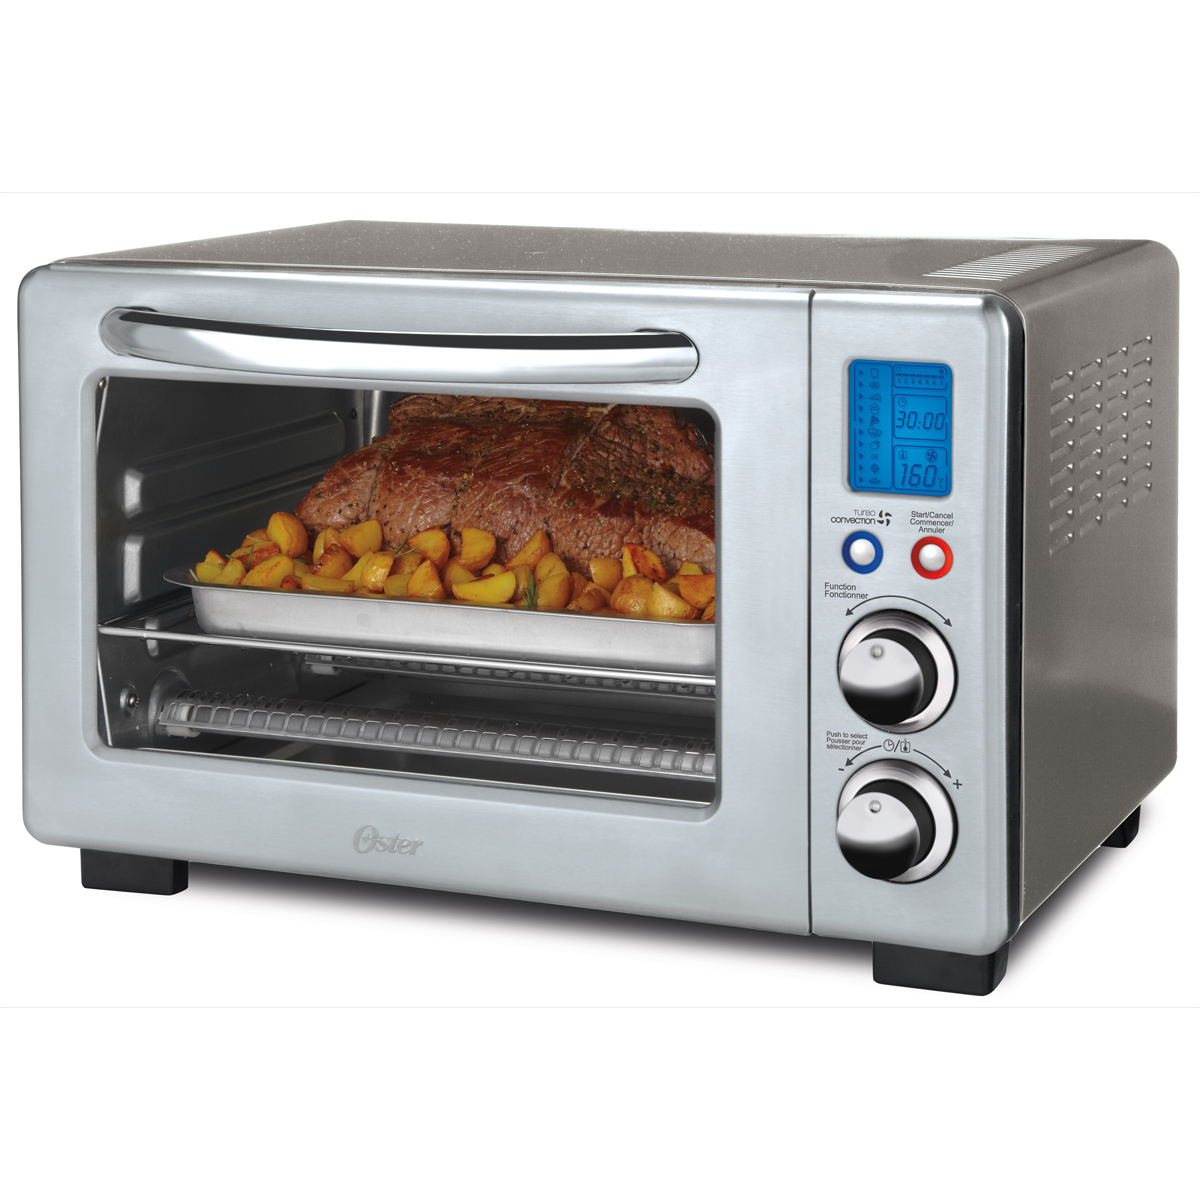 Don't let the myths about RV microwave convection ovens keep you from using this space-saving two-in-one kitchen appliance.